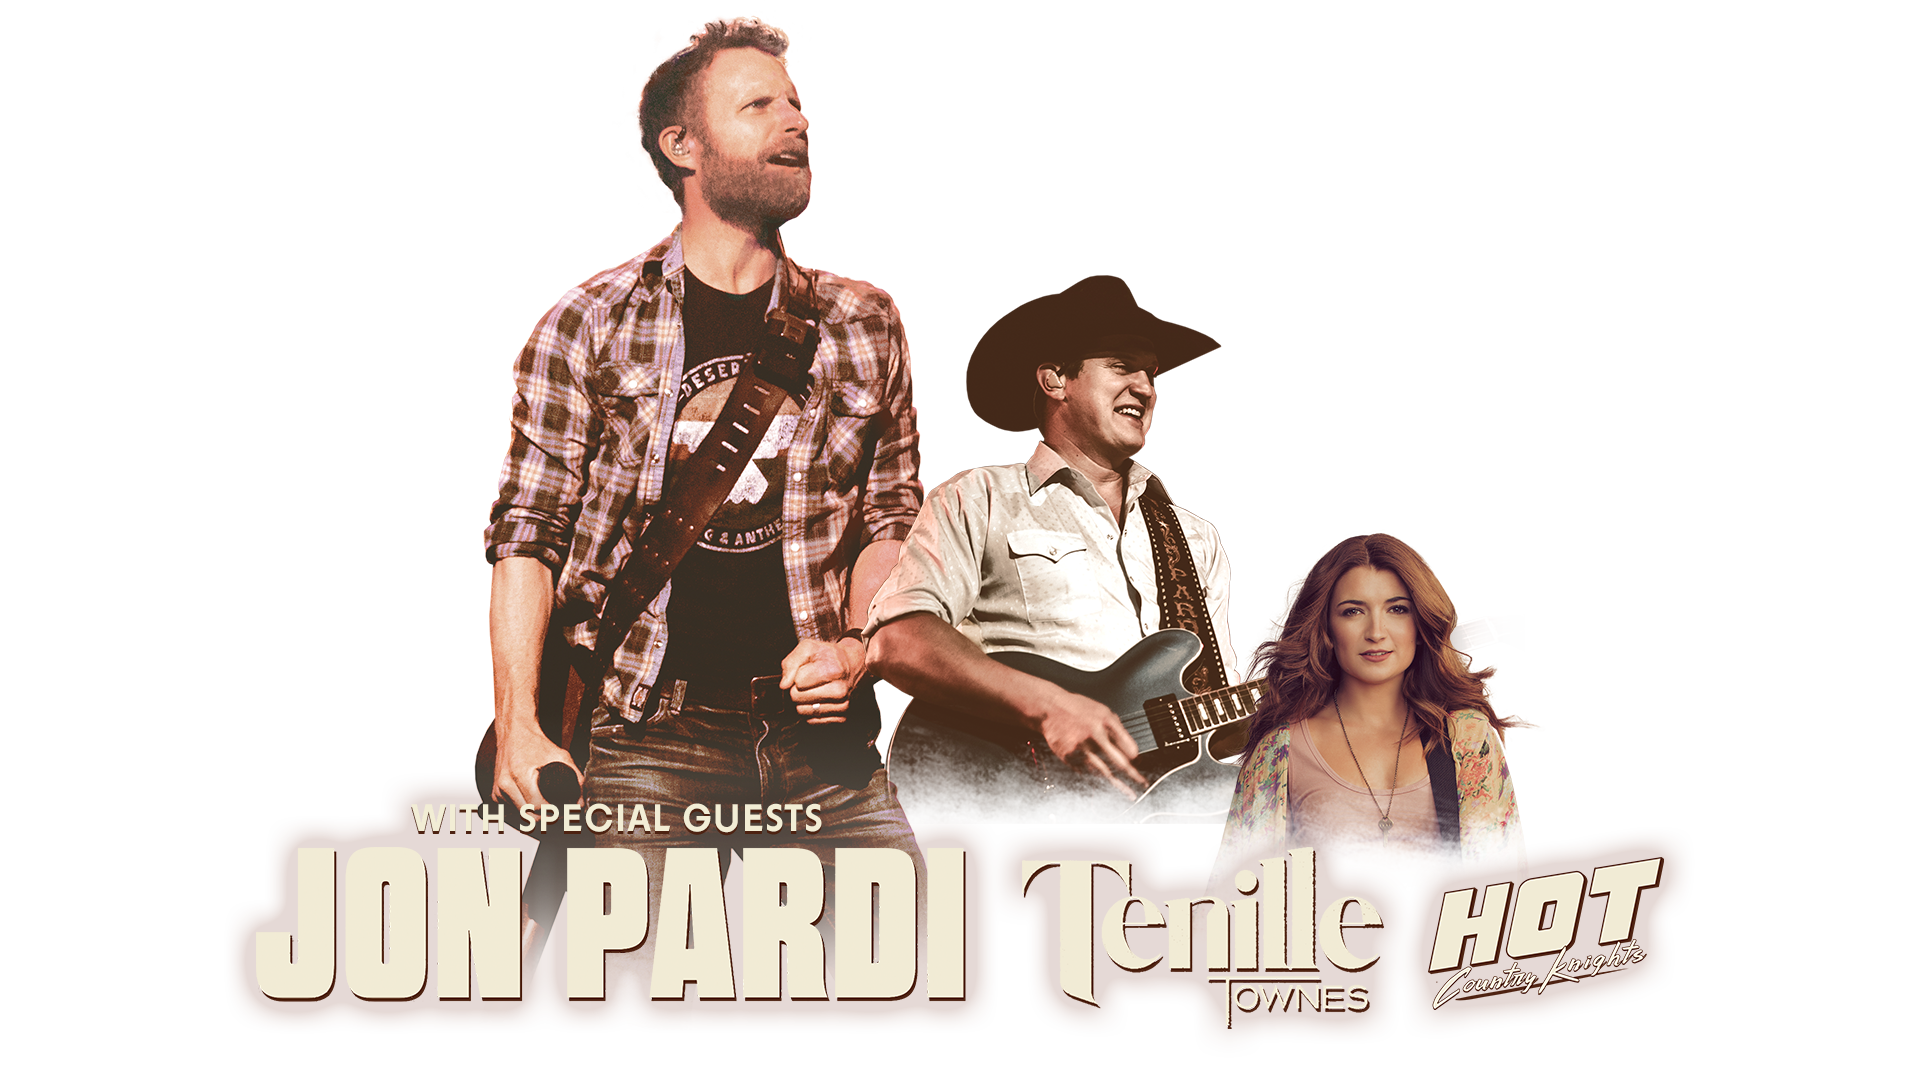 with Special Guests Jon Pardi, Tennille Townes and Hot Country Knights